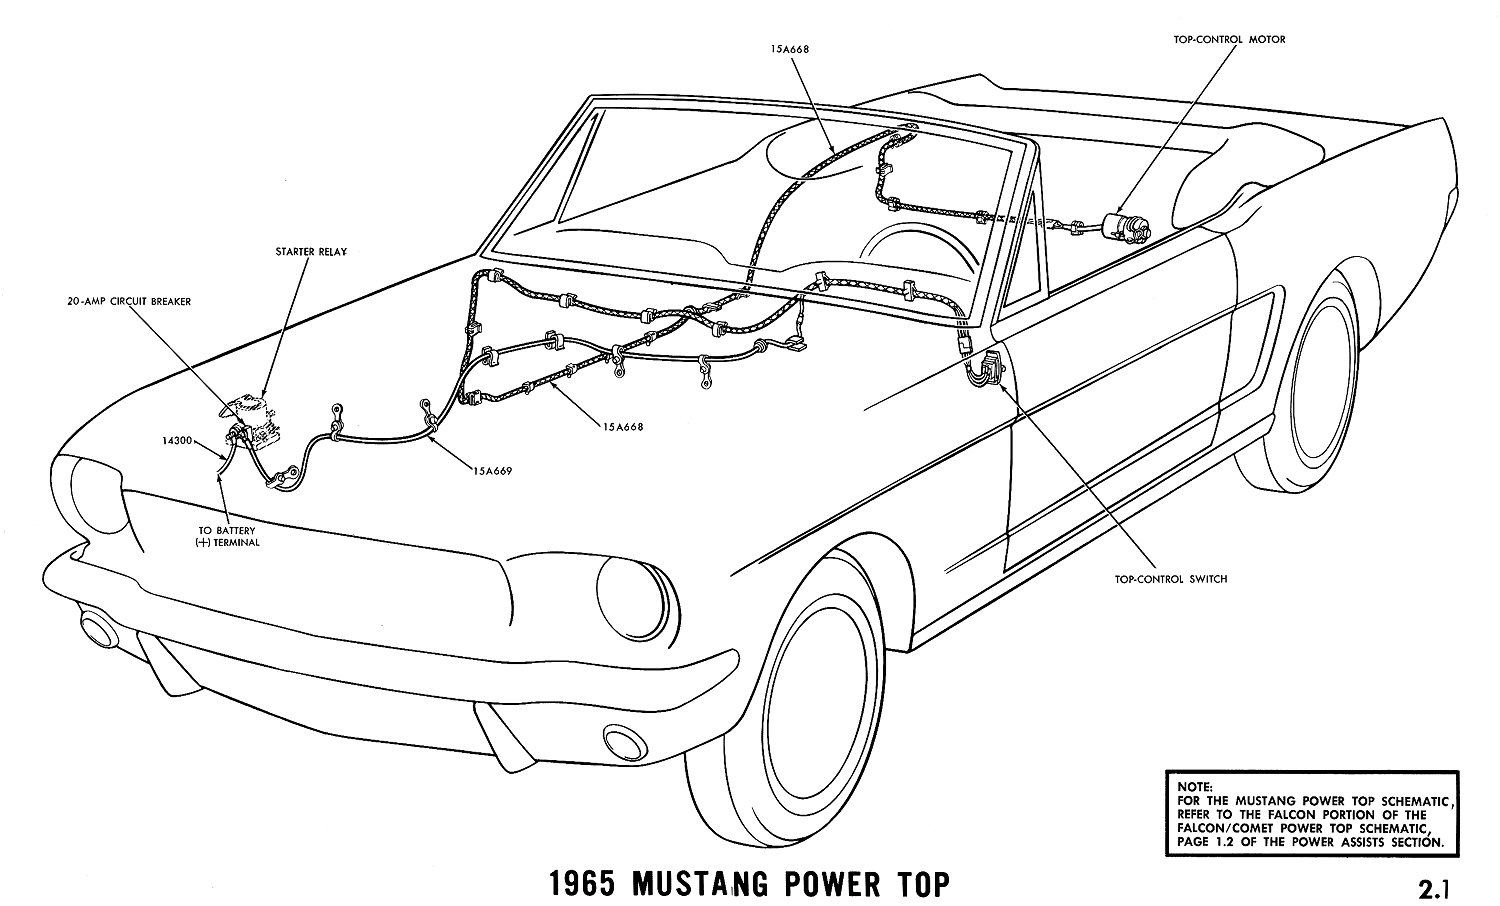 1965 Mustang Wiring Diagrams Average Joe Restoration 65 Tail Light Diagram Schematic Power Top Pictorial Or